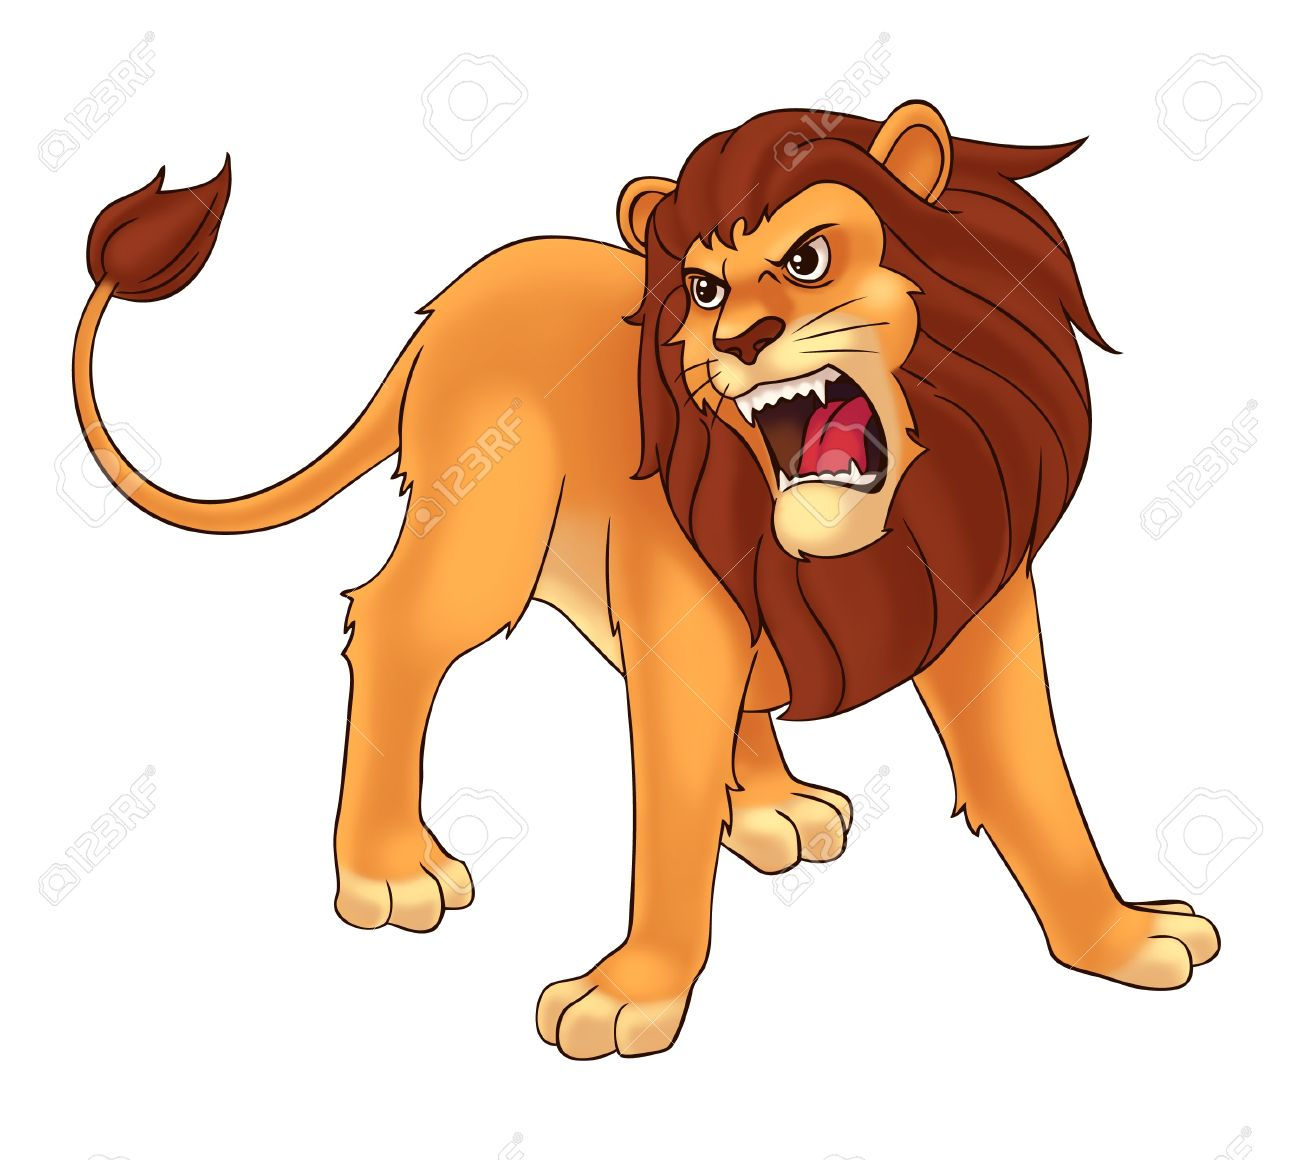 Lion clipart lion roar #14